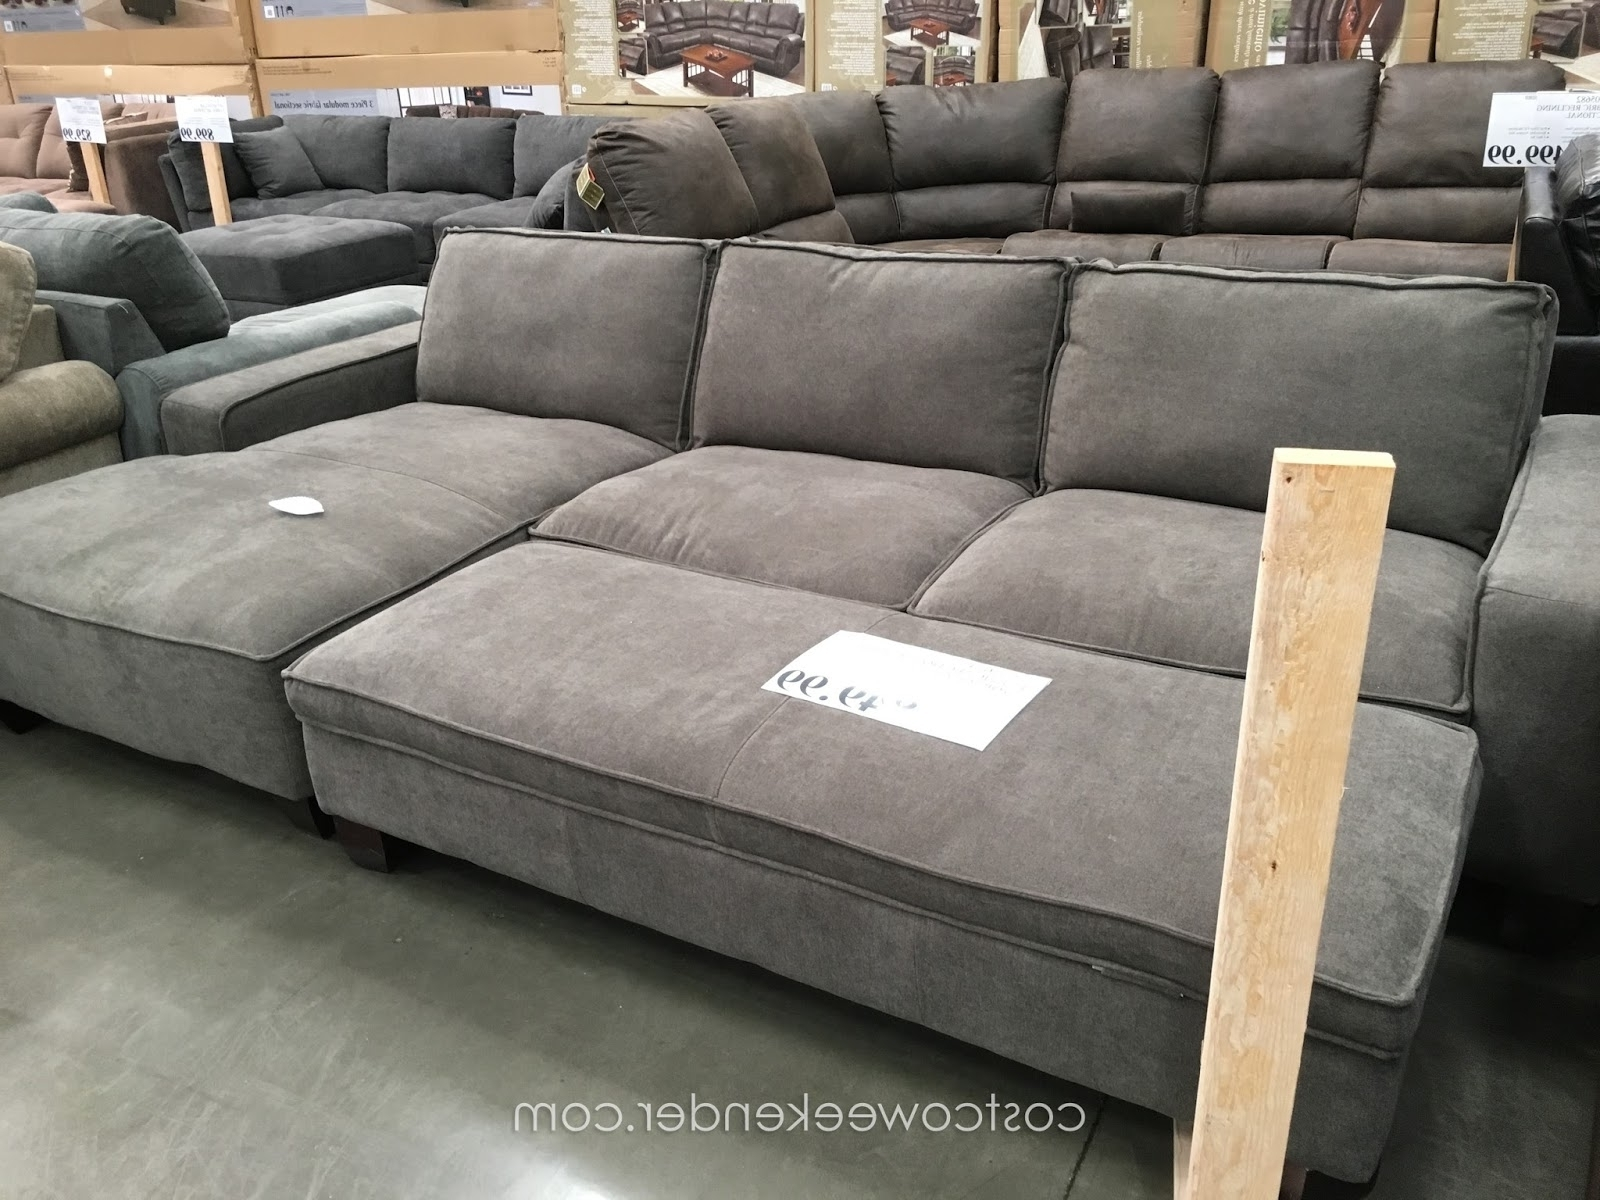 Current Sectional Sofas At Costco In Costco Sleeper Sofa With Chaise – Mariaalcocer (View 4 of 20)